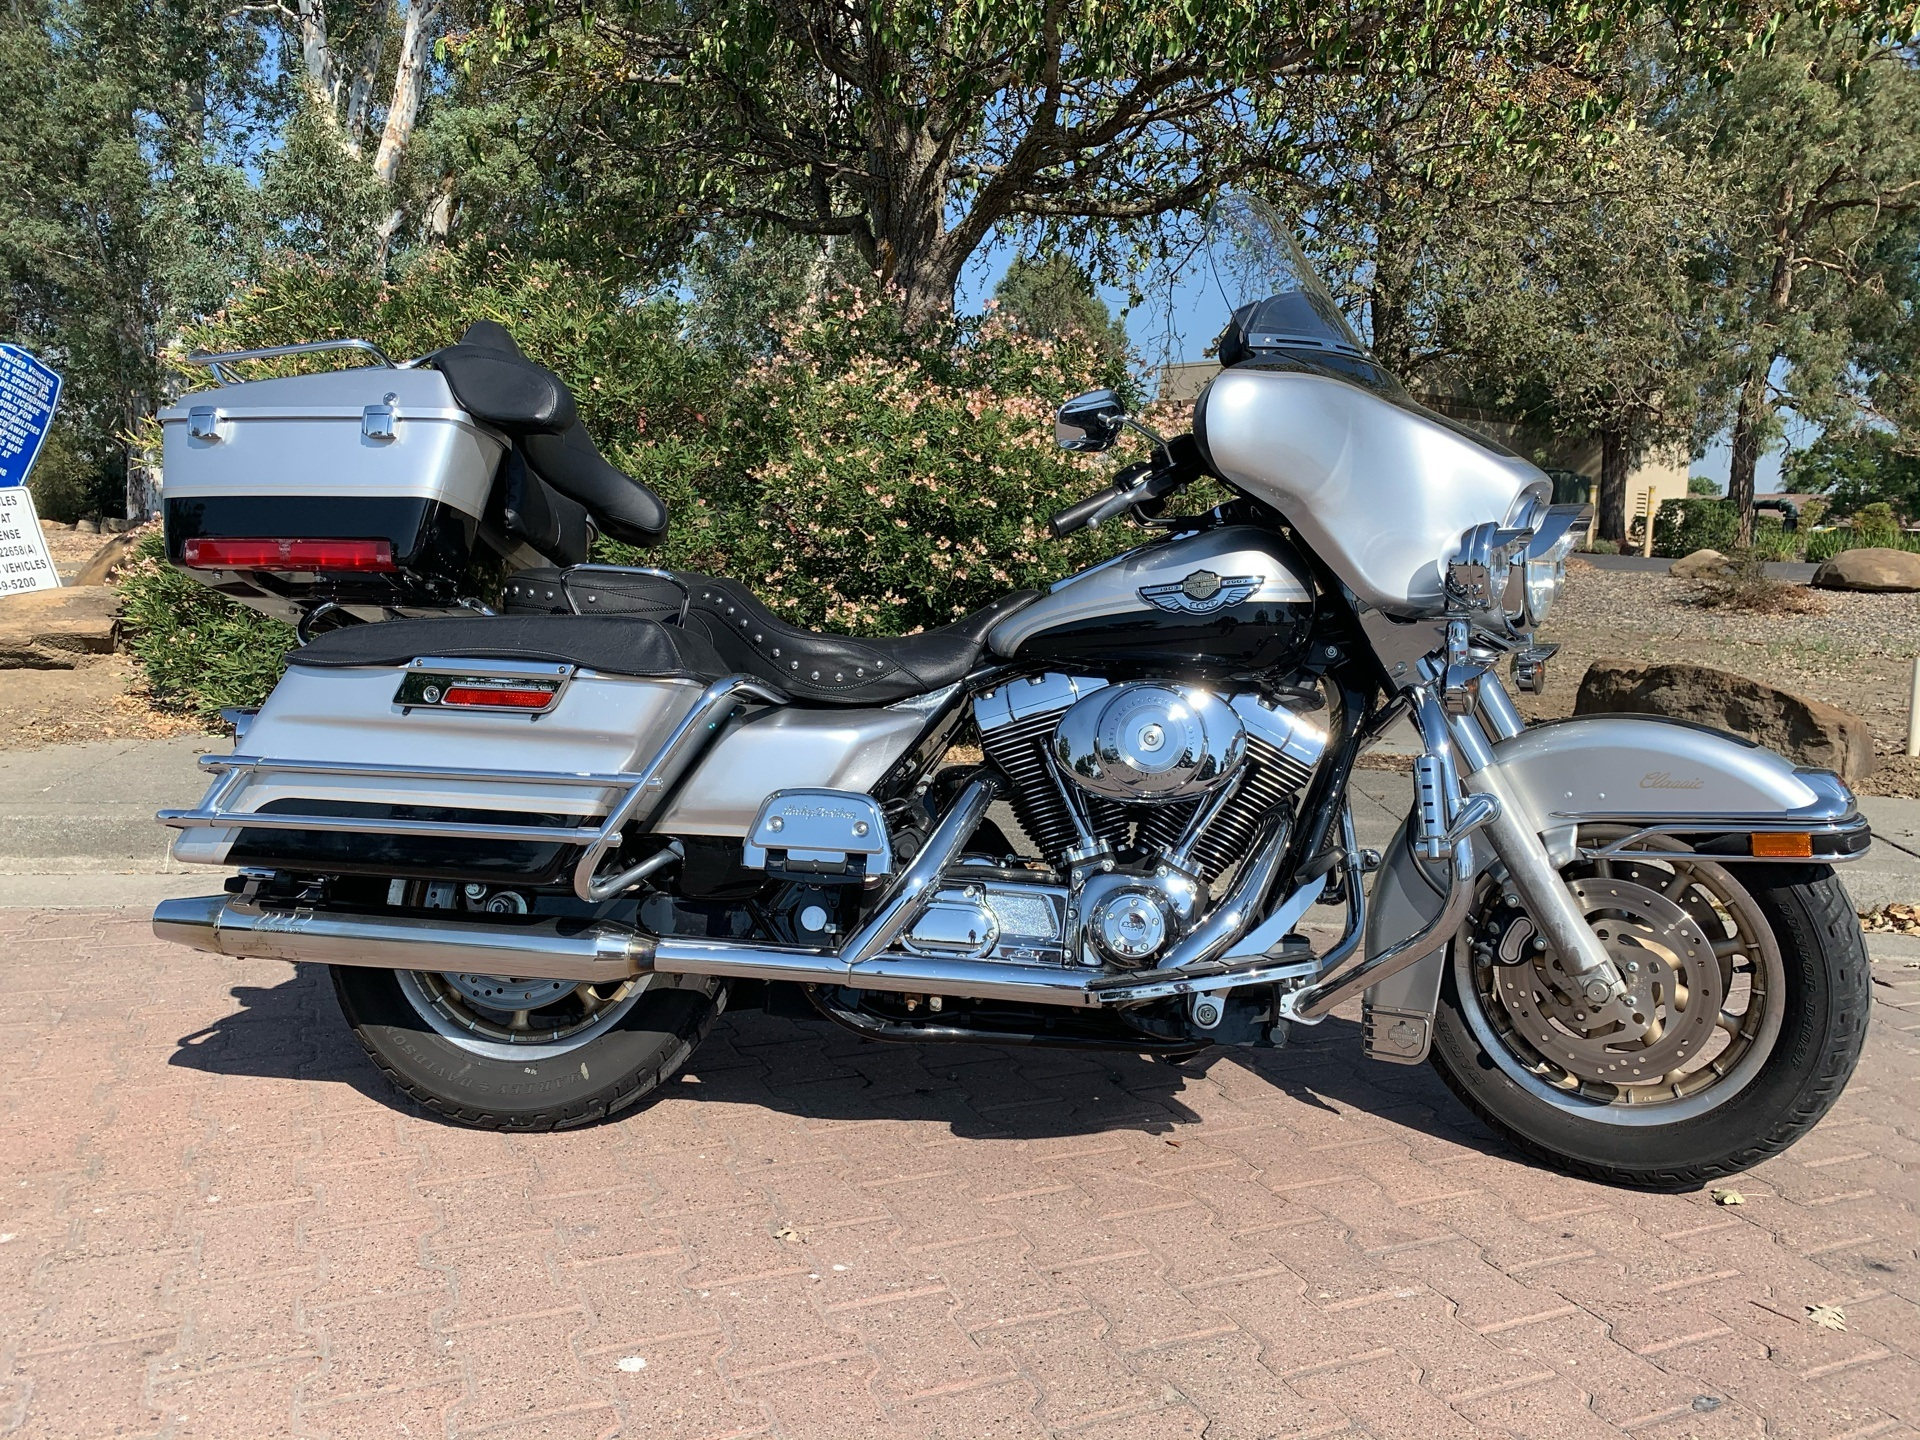 2003 Harley-Davidson FLHTC/FLHTCI Electra Glide® Classic in Vacaville, California - Photo 2